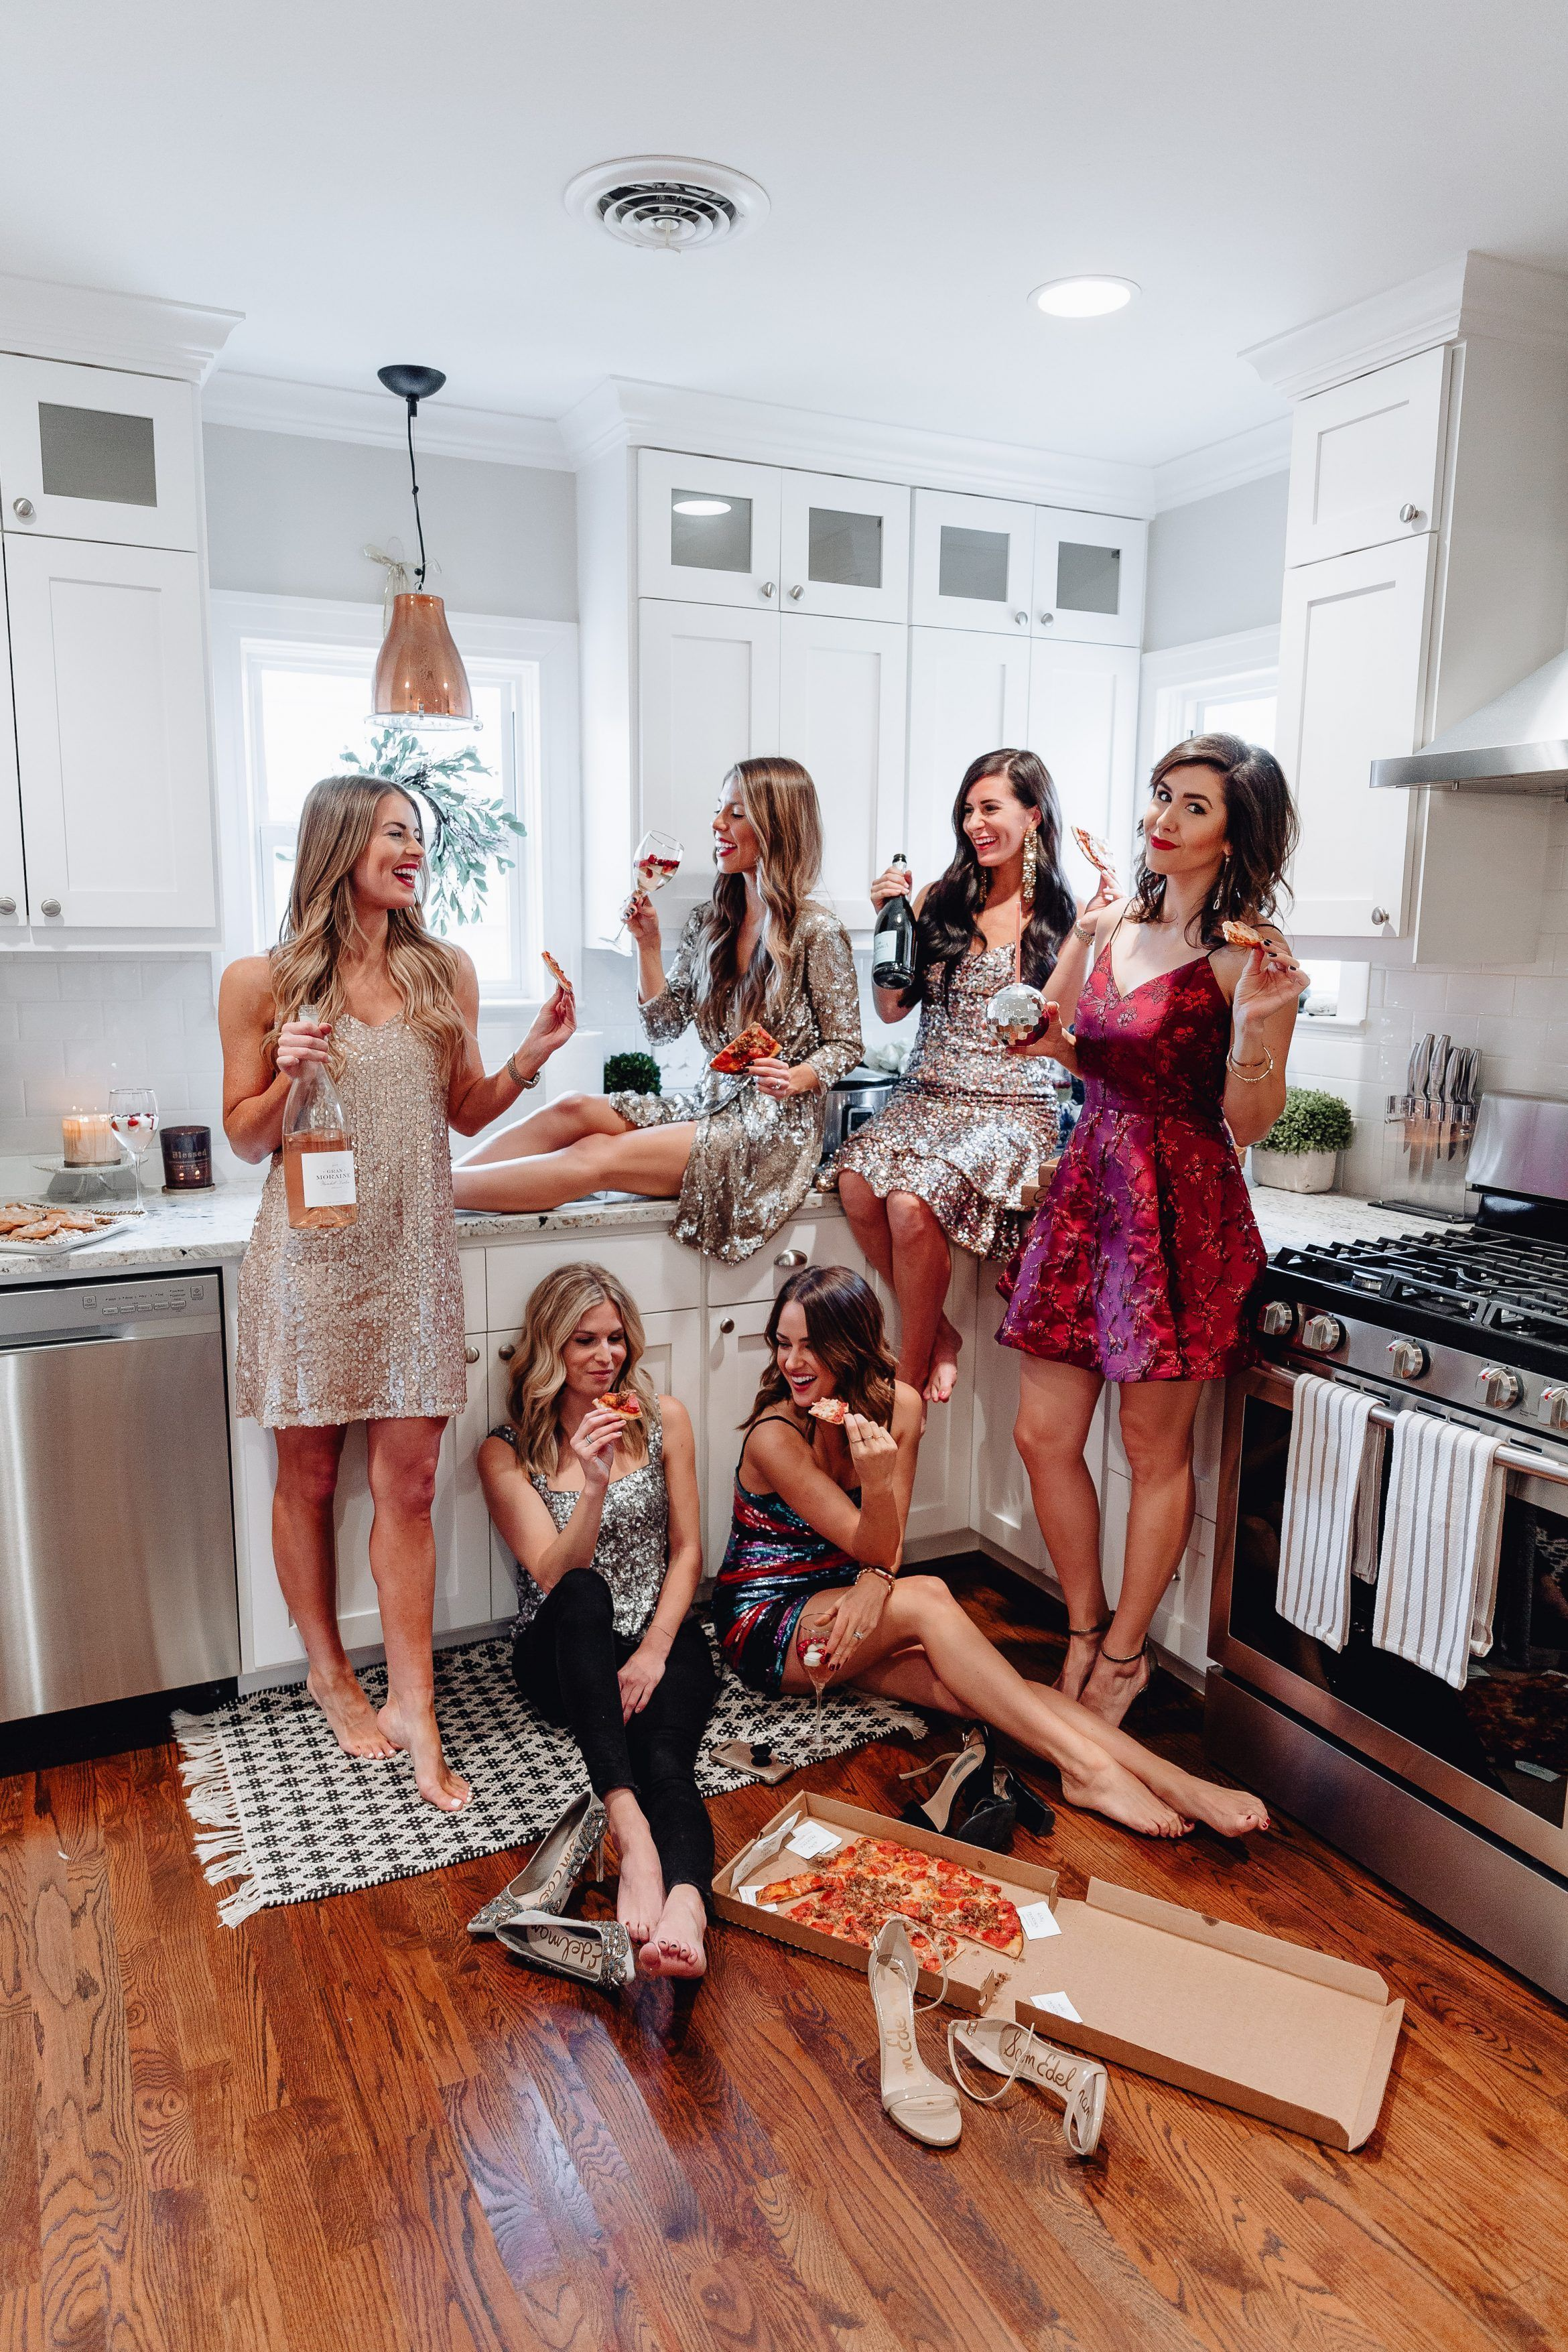 The Ultimate New Years Eve Guide - in 2020 | Girls night ...